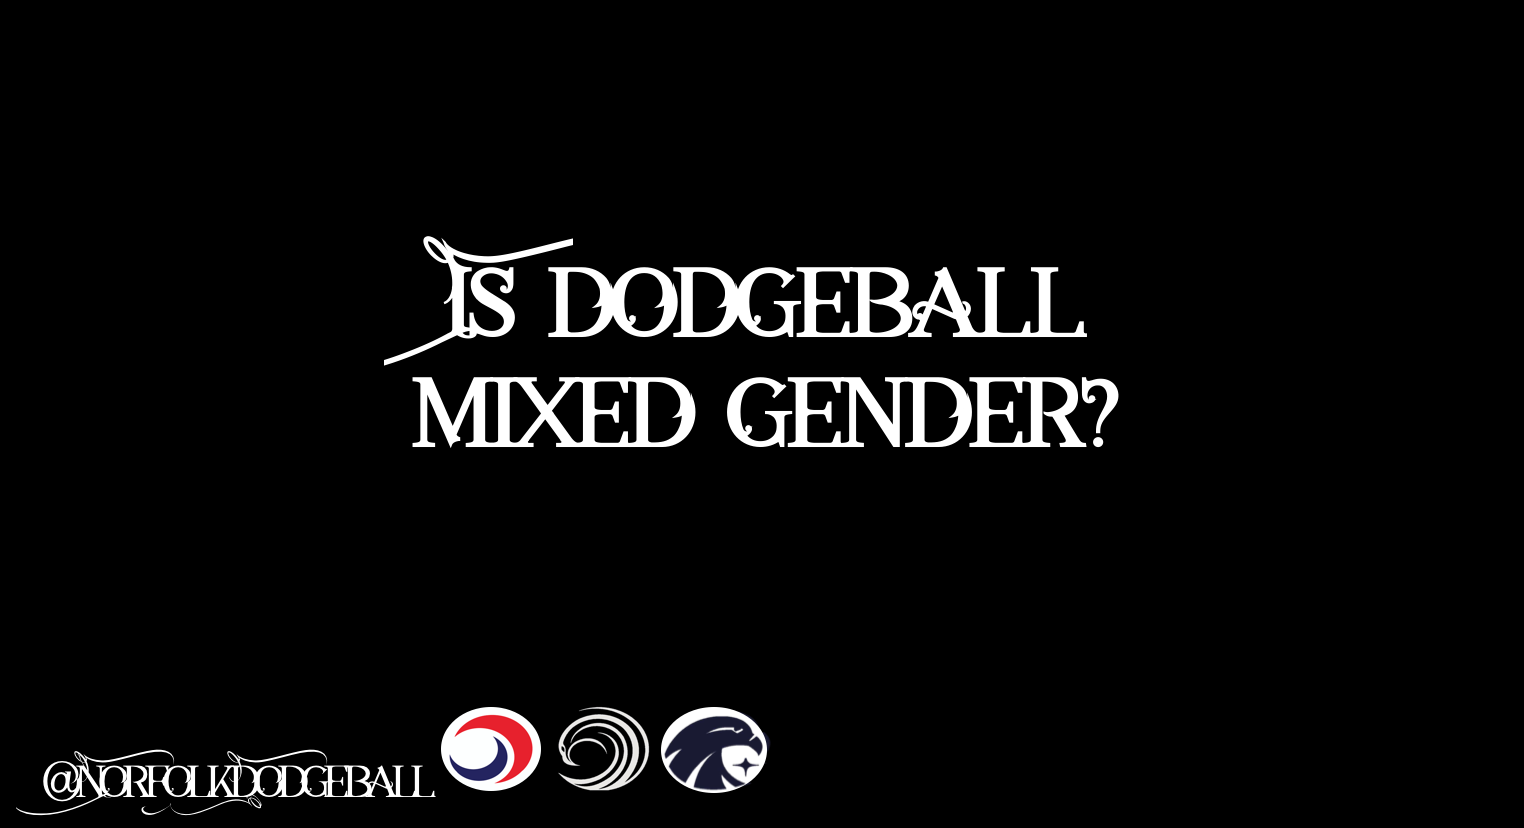 Yes! - Yes! Whilst British Dodgeball leagues are divided into Mens, Women's and mixed leagues, there are a variety of tournaments we are going to be entered in which are open to all genders. Not only that, training sessions with us are mainly run as a whole team and we have a fairly balanced male and female ratio within the club, of which a lot of sports do not have!